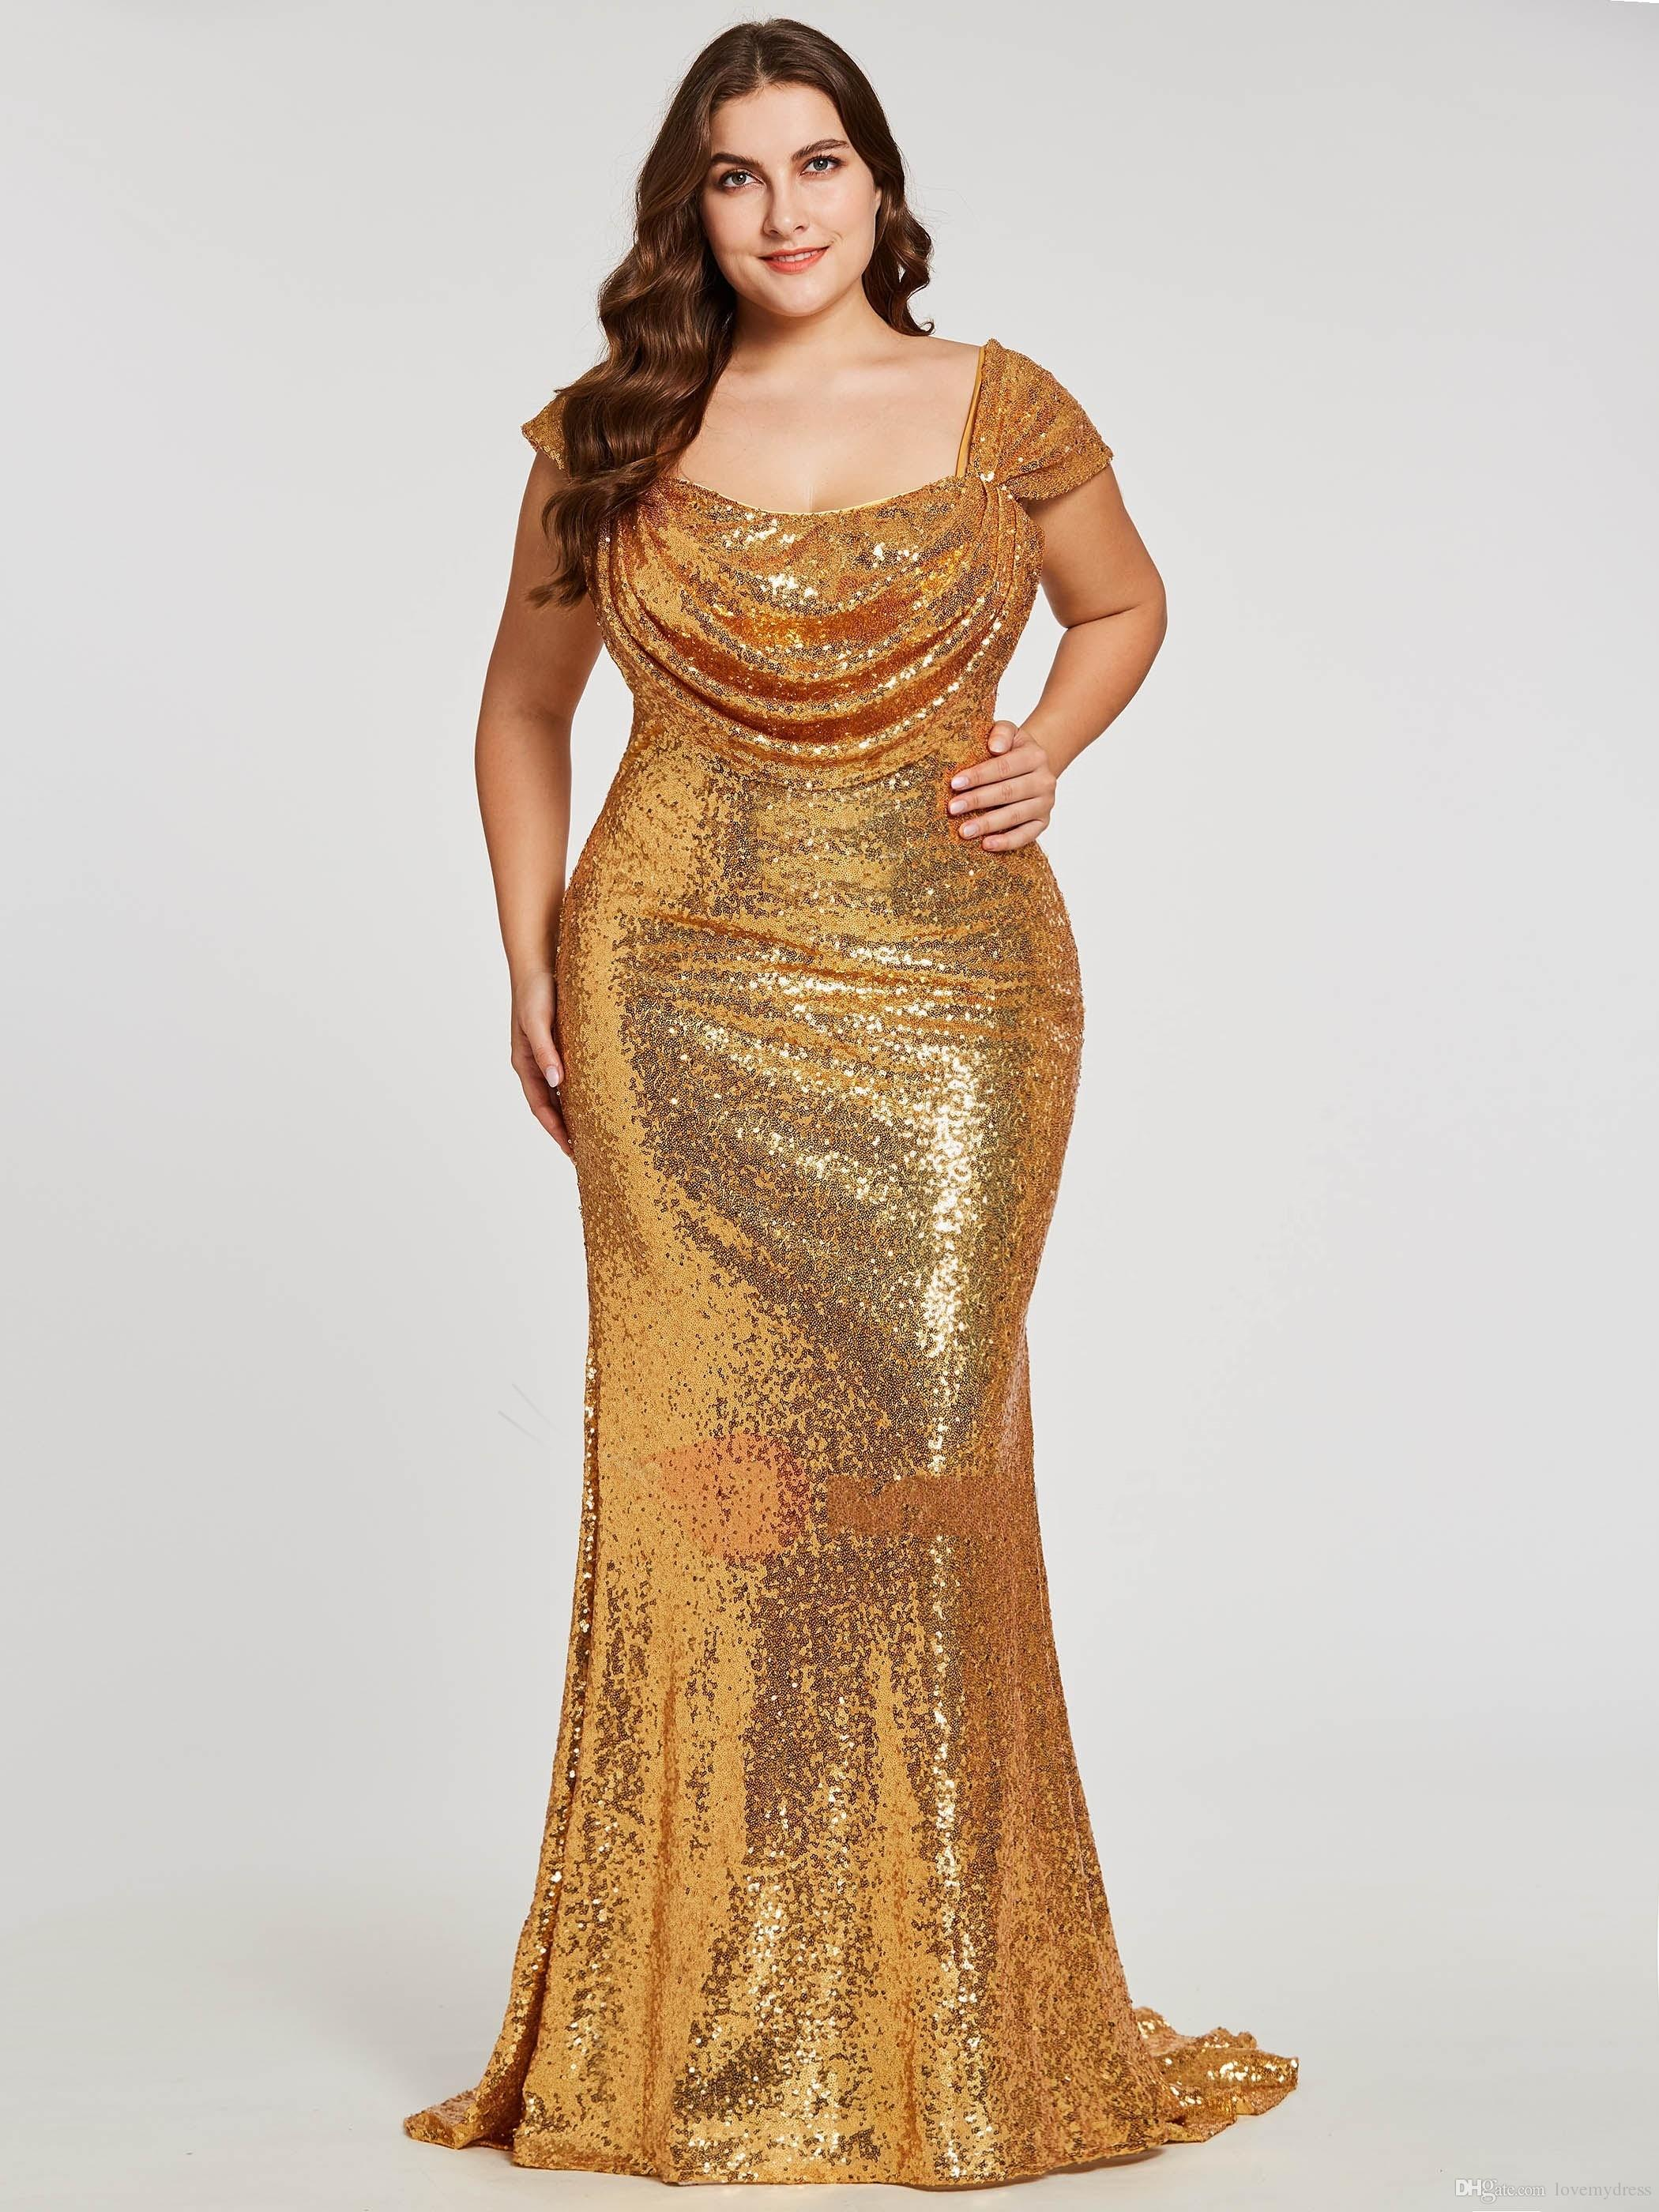 2650dff2 Sparkly Gold Sequined Plus Size Evening Prom Dress Square Neck 2019 Mermaid  Zipper Back Floor Length Ruched New Pageant Dress Canada 2019 From  Lovemydress, ...